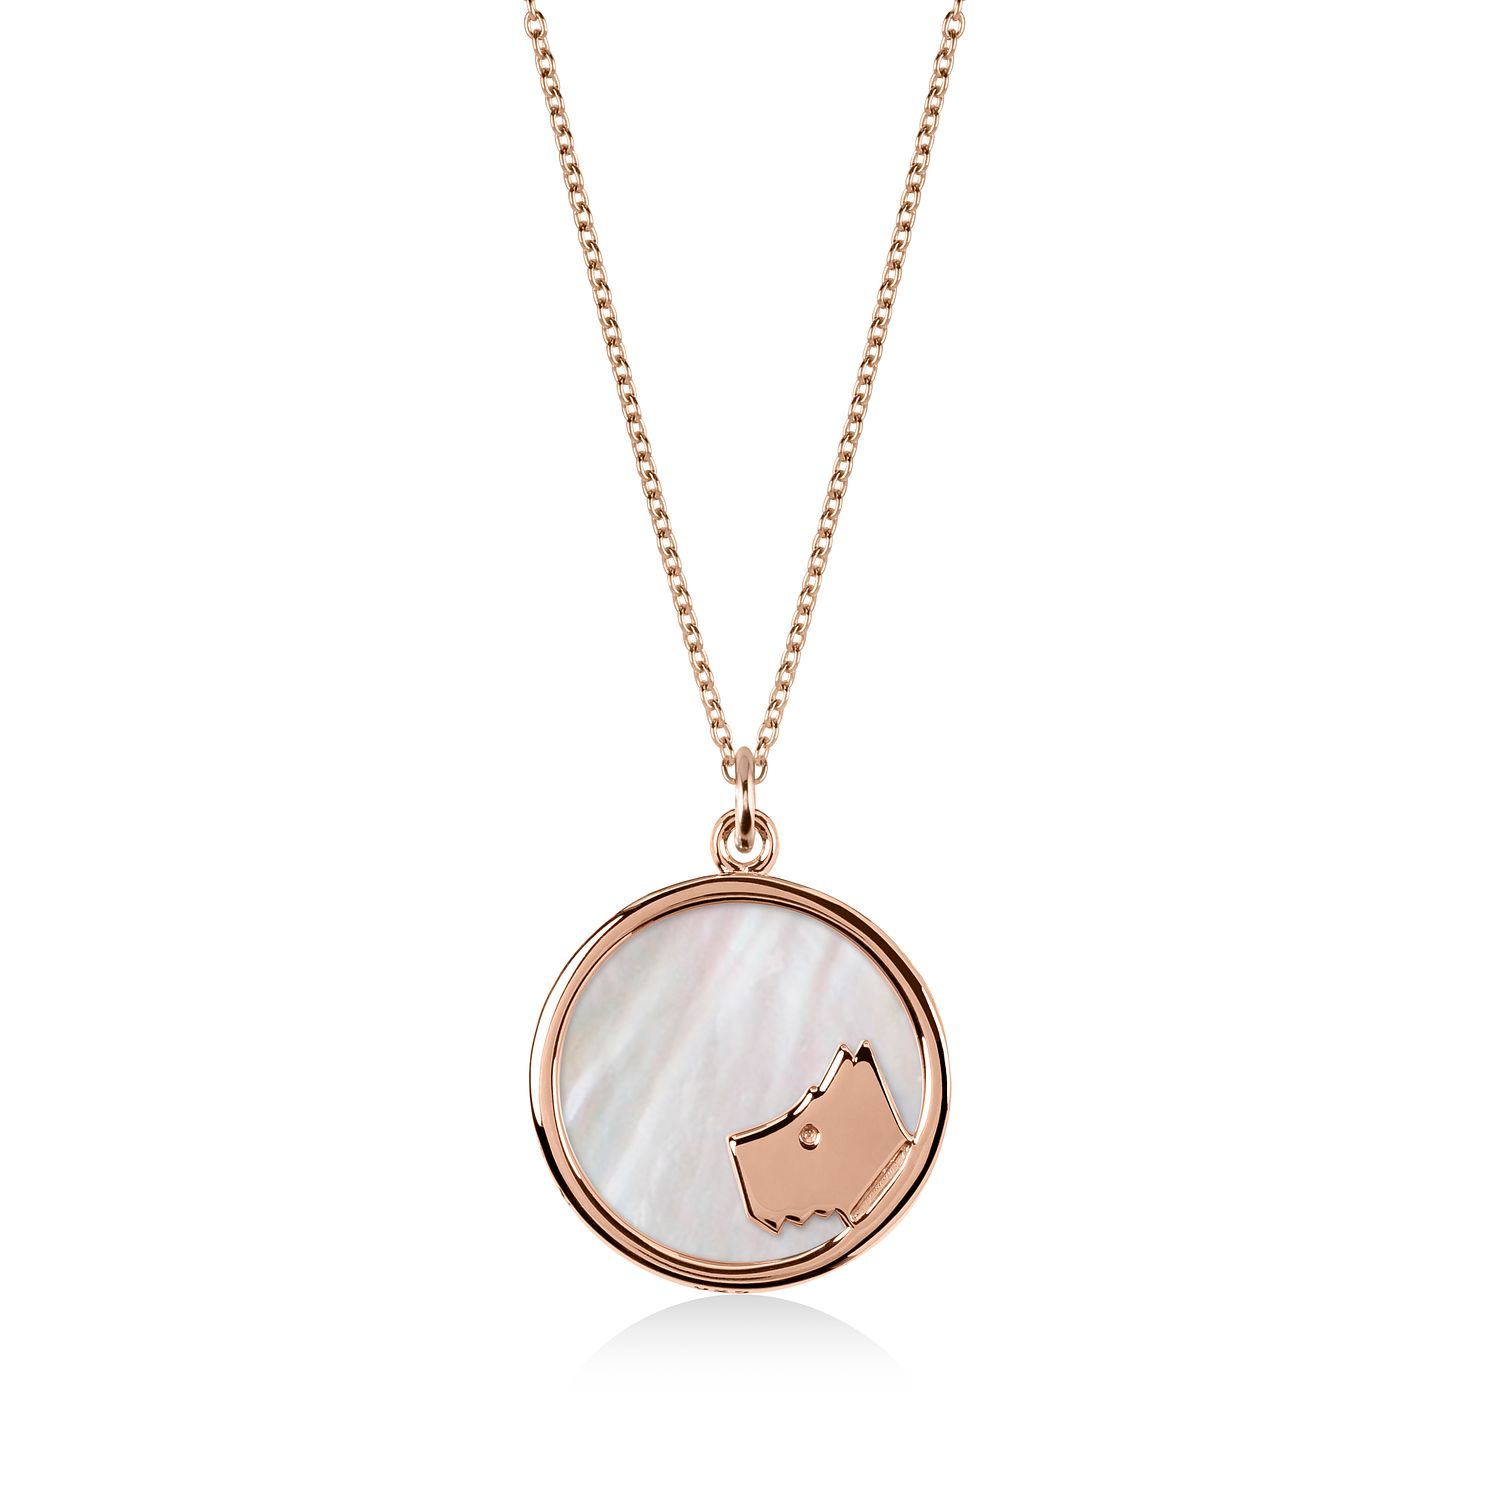 Radley 18ct Rose Gold Plated Pink Mother Of Pearl Necklace - Product number 4237307